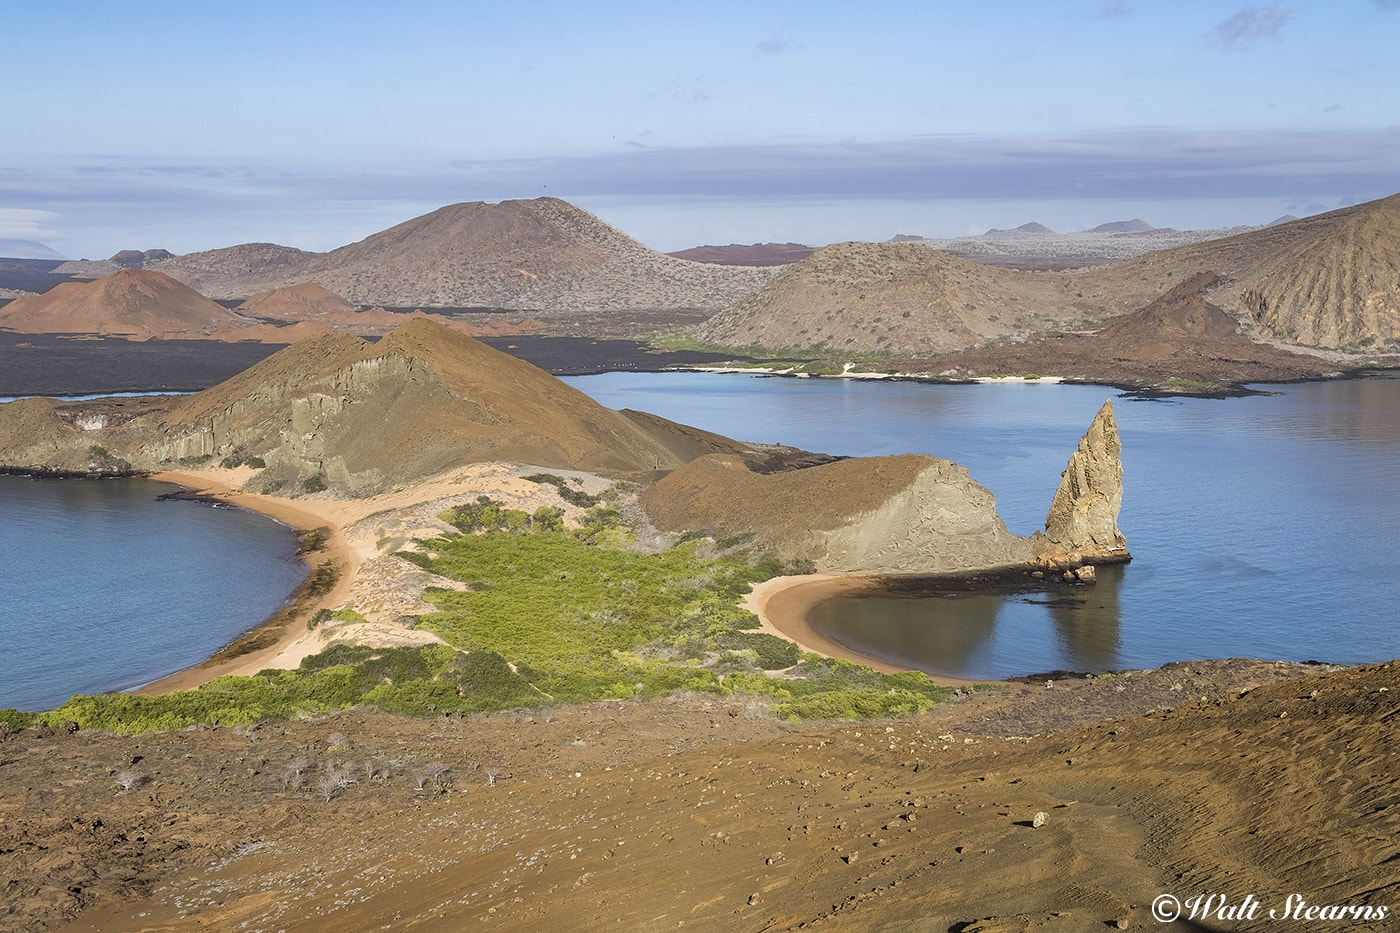 The volcanic slopes of Bartolome Island make for dramatic landscape photos.